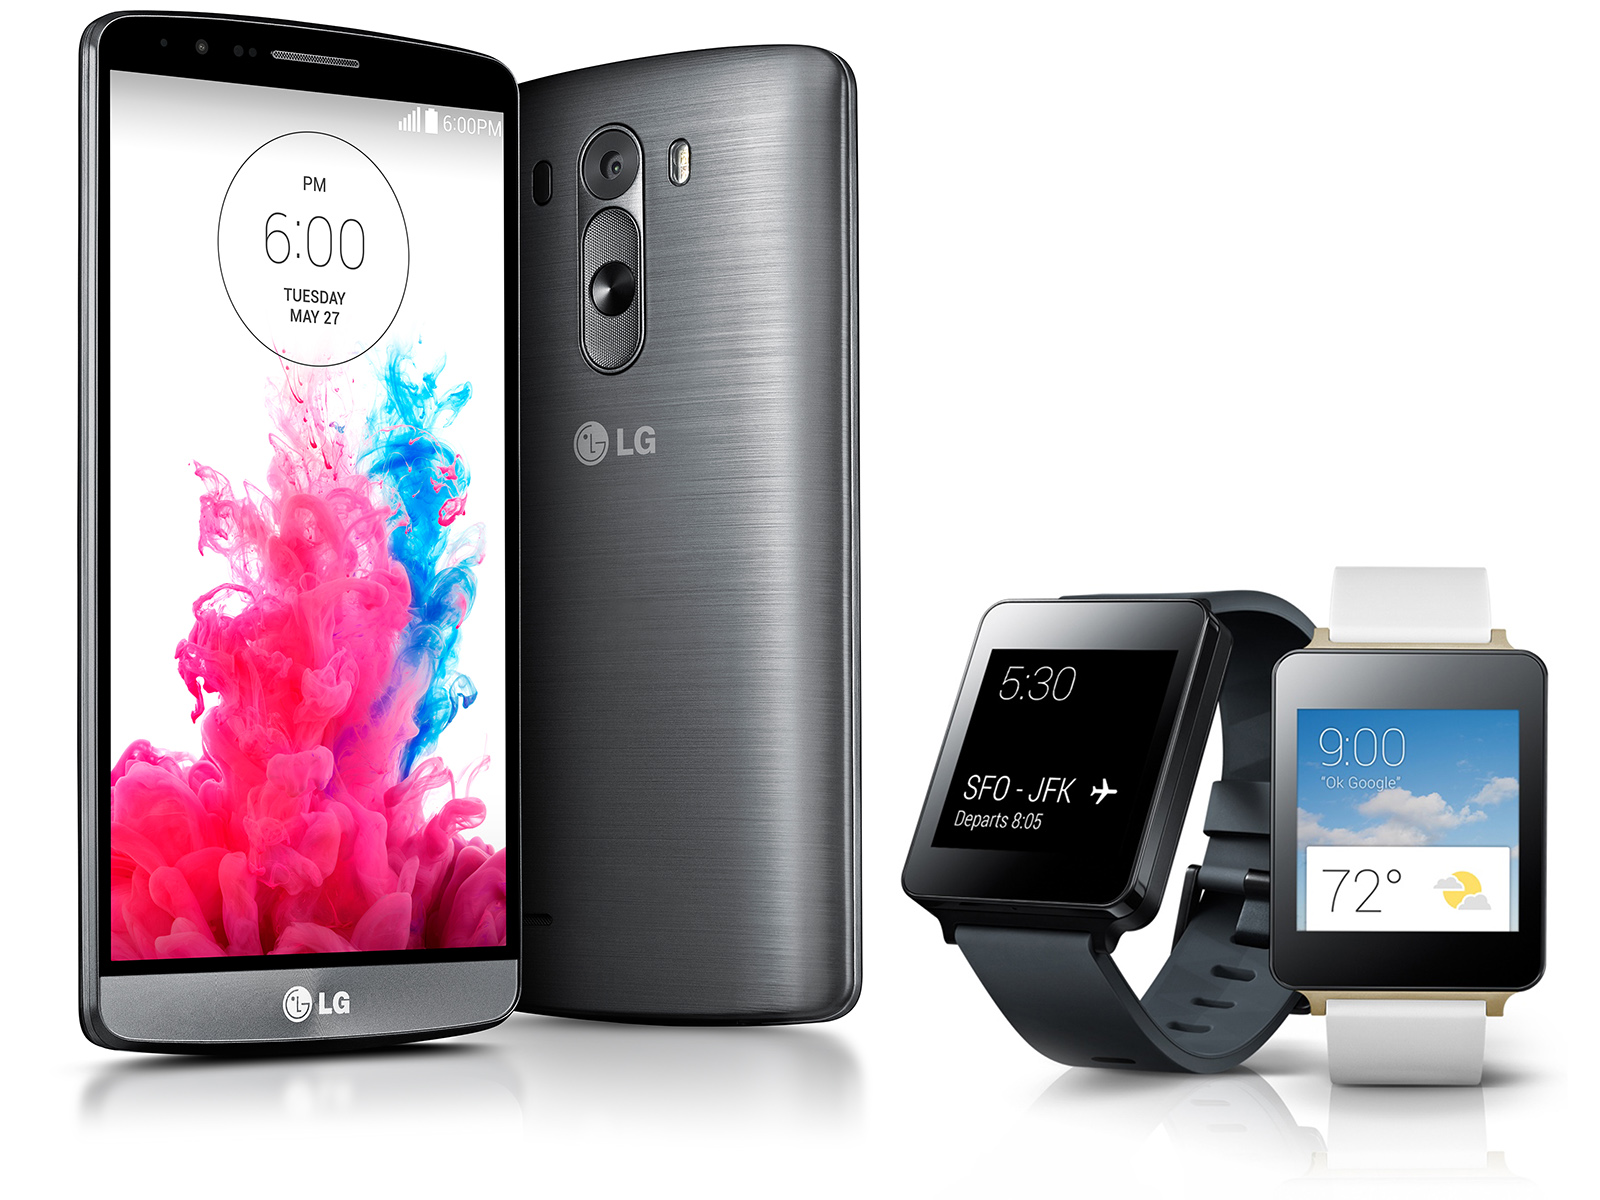 LG G3 Smartphone and LG G Watch Review - NotebookCheck net Reviews